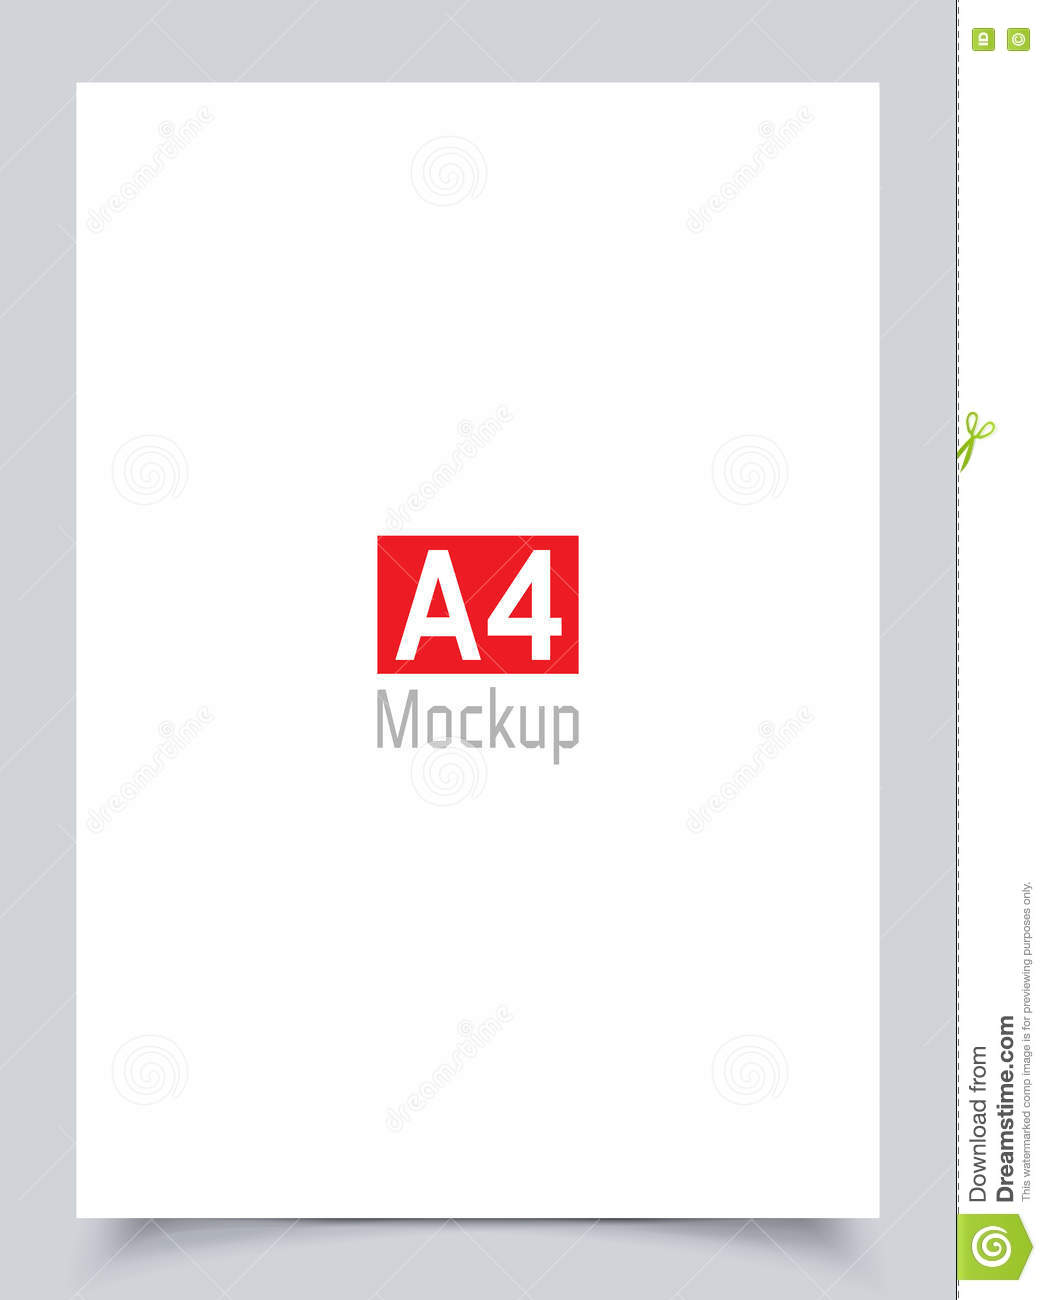 Mockup Blank White Paper Page A4 Size With Shadow Vector Flyer Mock Up Isolated On Gray Background Material Design Illustration Poster